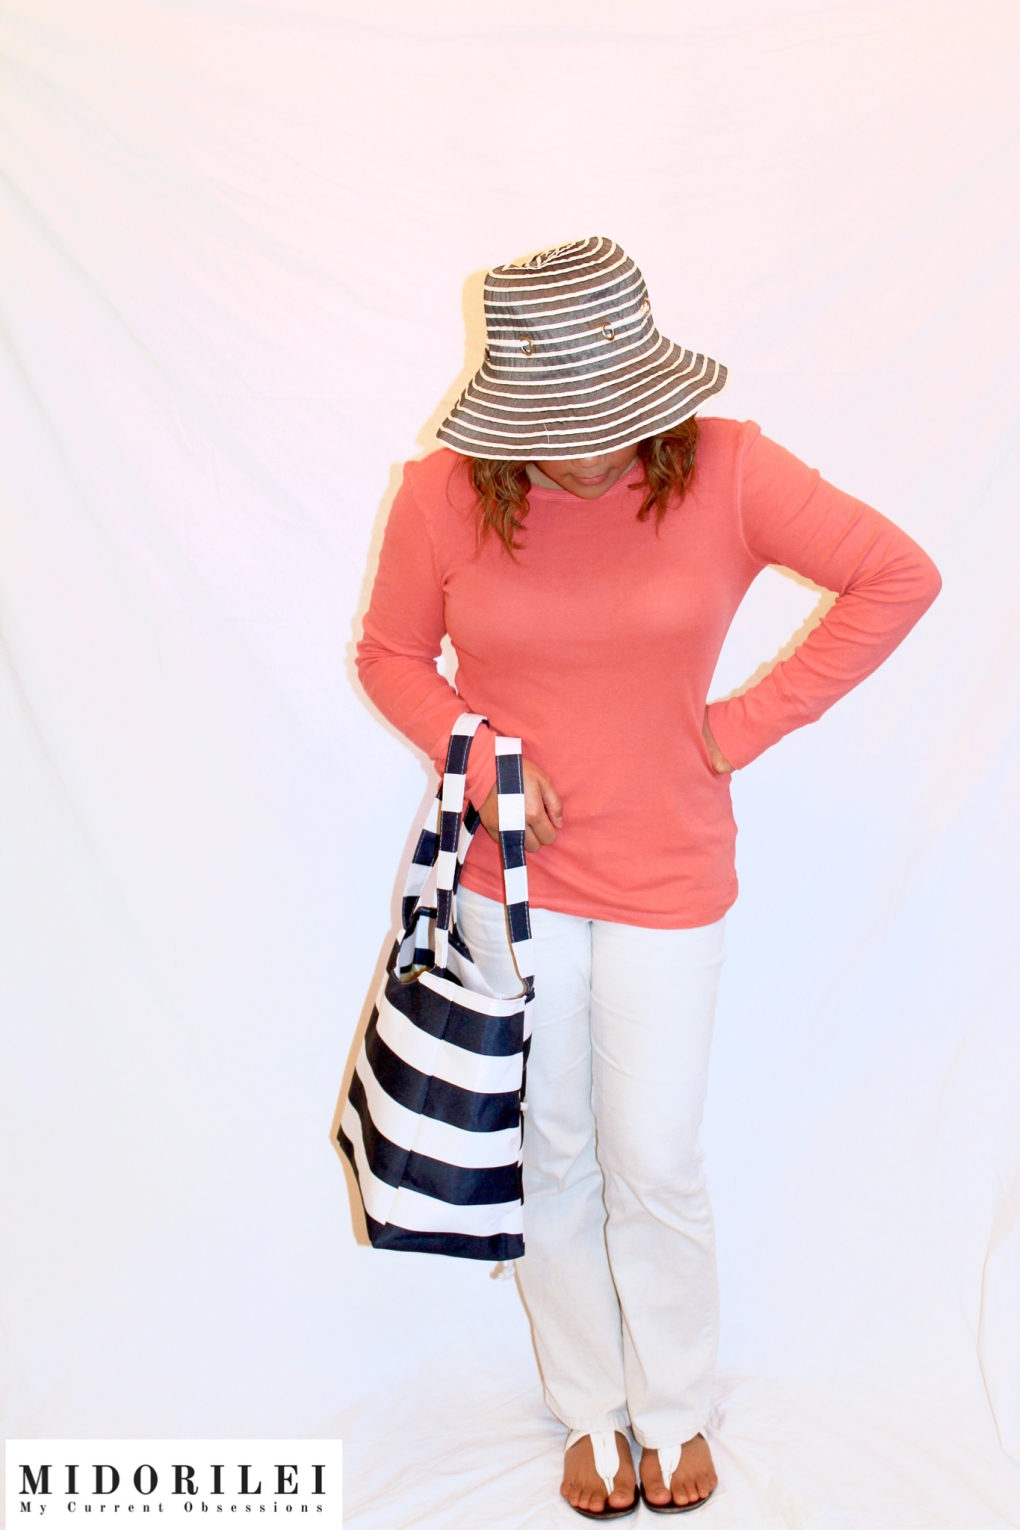 summer outfits, MidoriLei wears blue and white nautical striped tote and hat, coral top, white jeans, and white sandals